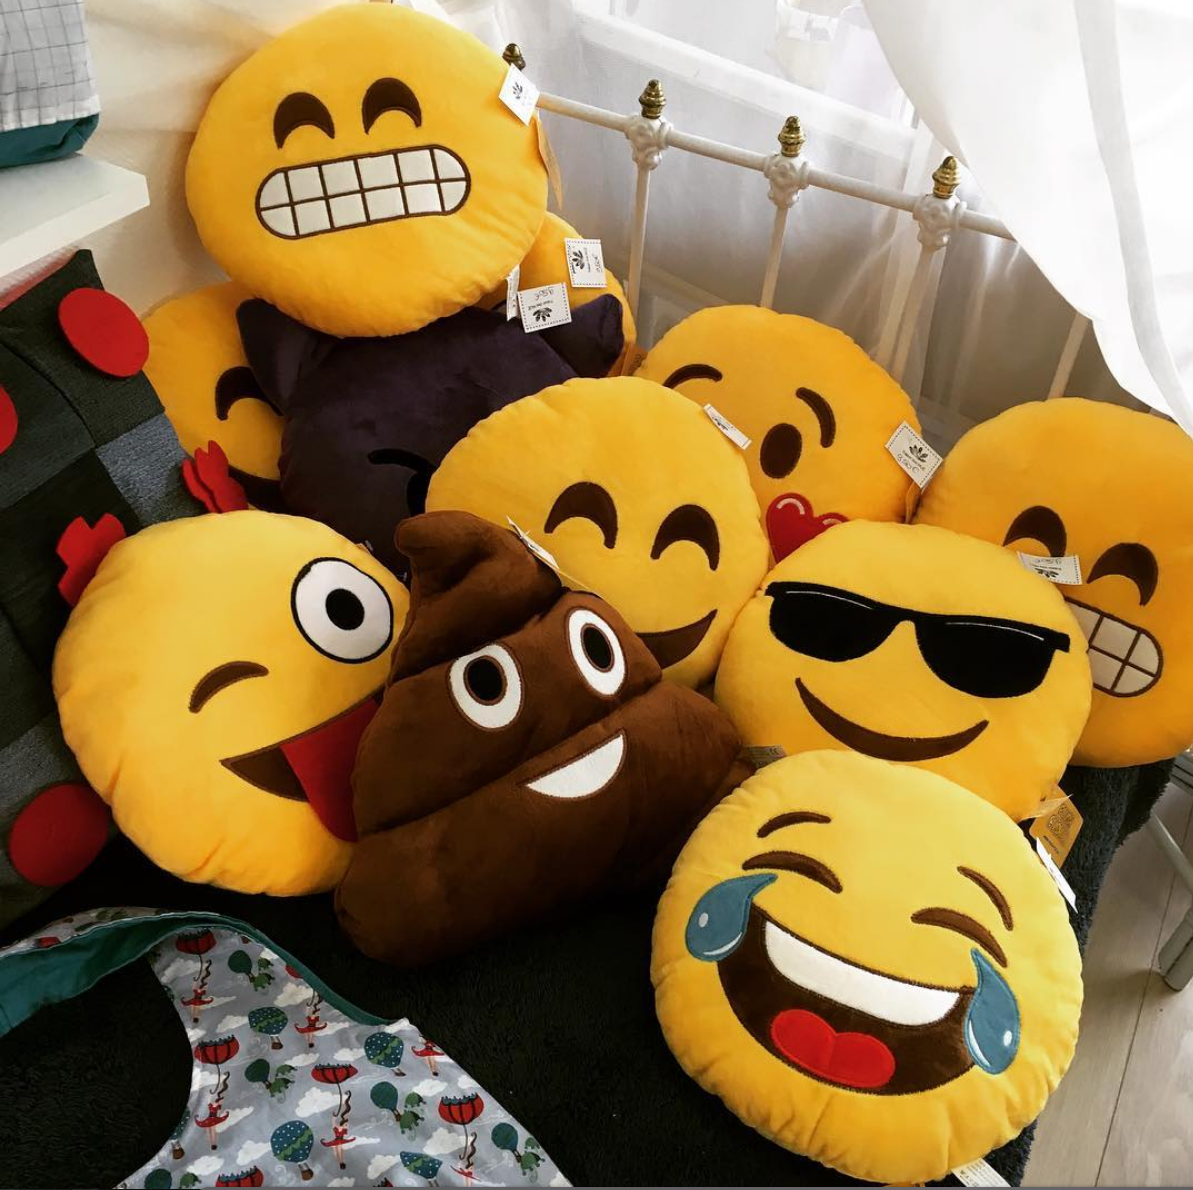 Coussin Rigolo coussin xl emoticon smiley clin d'oeil rigolo